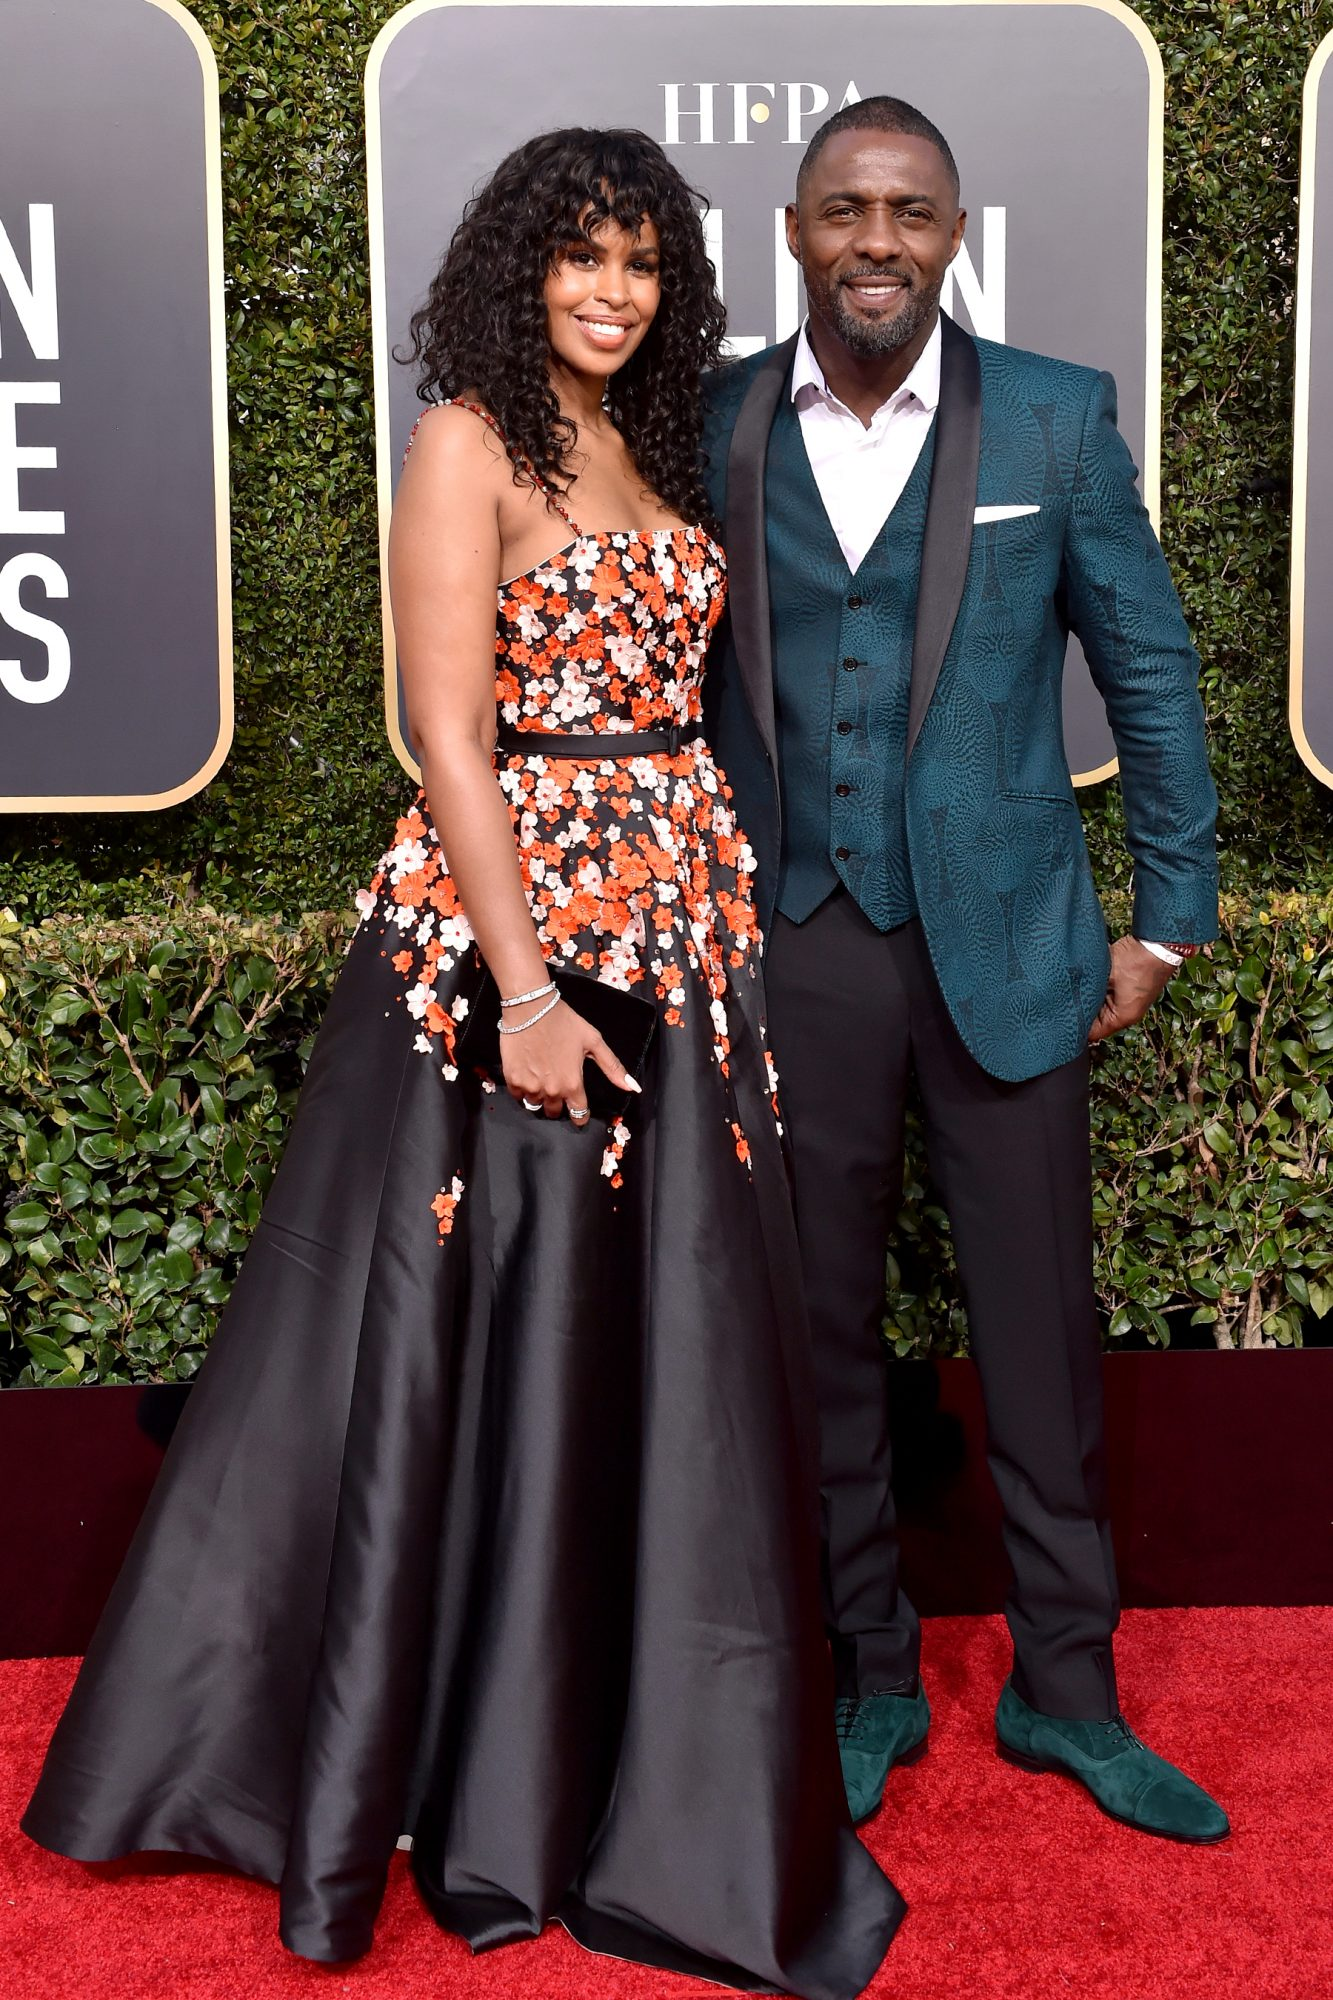 """Idris Elba opened up about meeting and falling in love with his new wife, Sabrina Dhowre, while filming The Mountain Between Us. """"Falling in love while making a movie about falling in love is pretty special,"""" he told PEOPLE in 2017."""